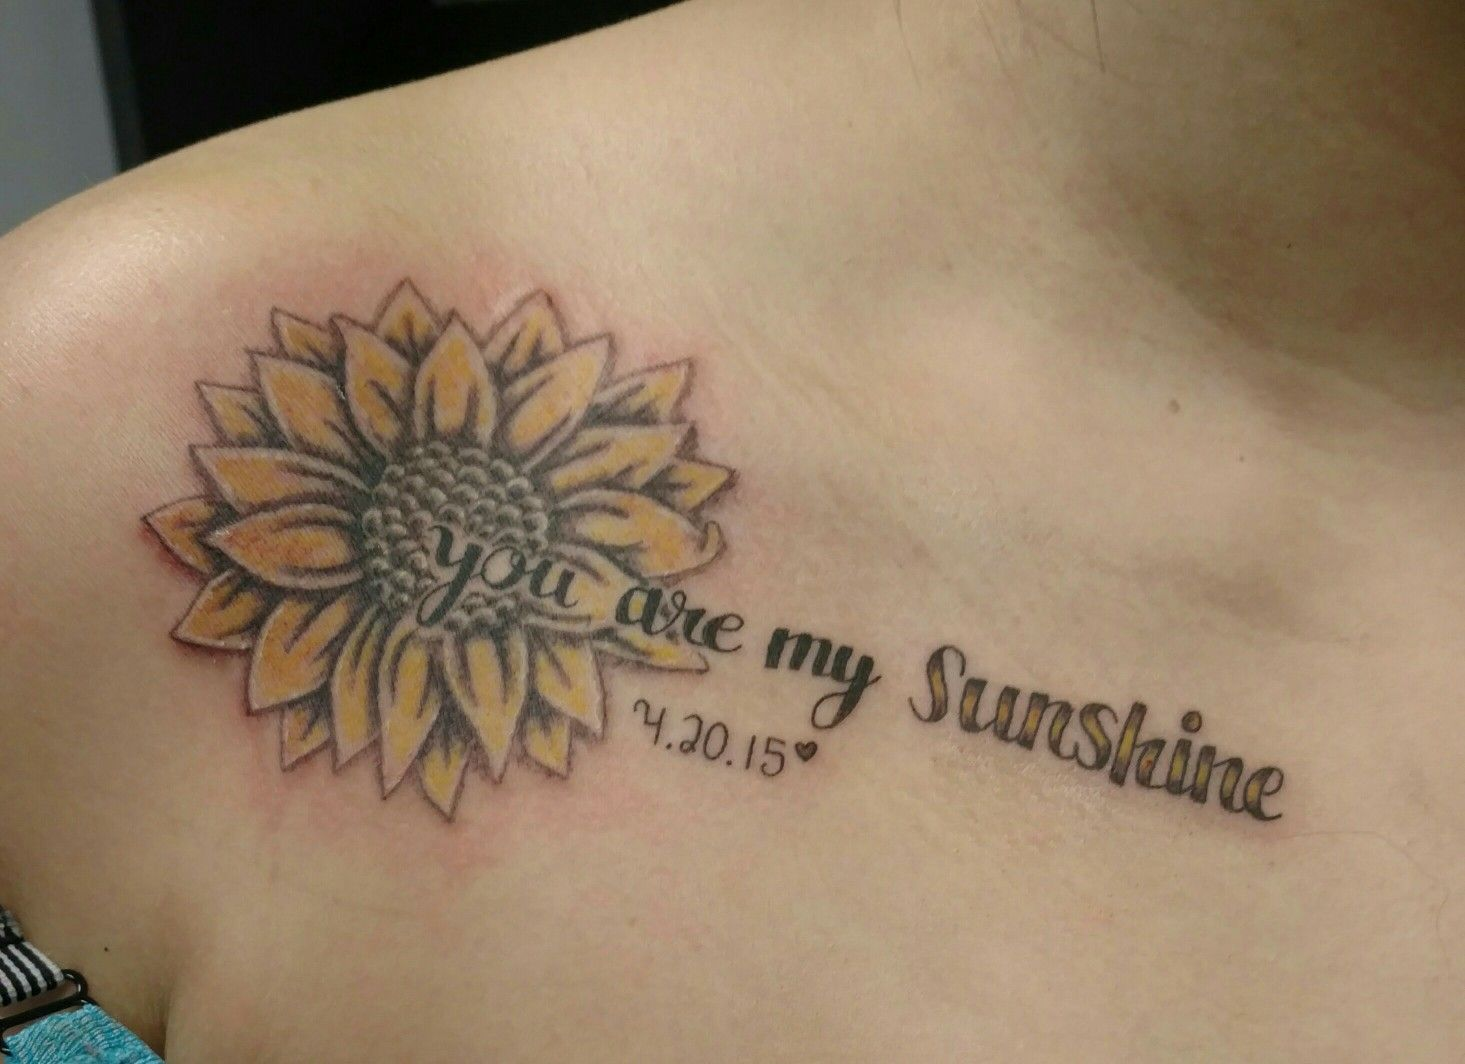 you are my sunshine and sunflower tattoo tattoos pinterest tattoo piercings and tatoo. Black Bedroom Furniture Sets. Home Design Ideas